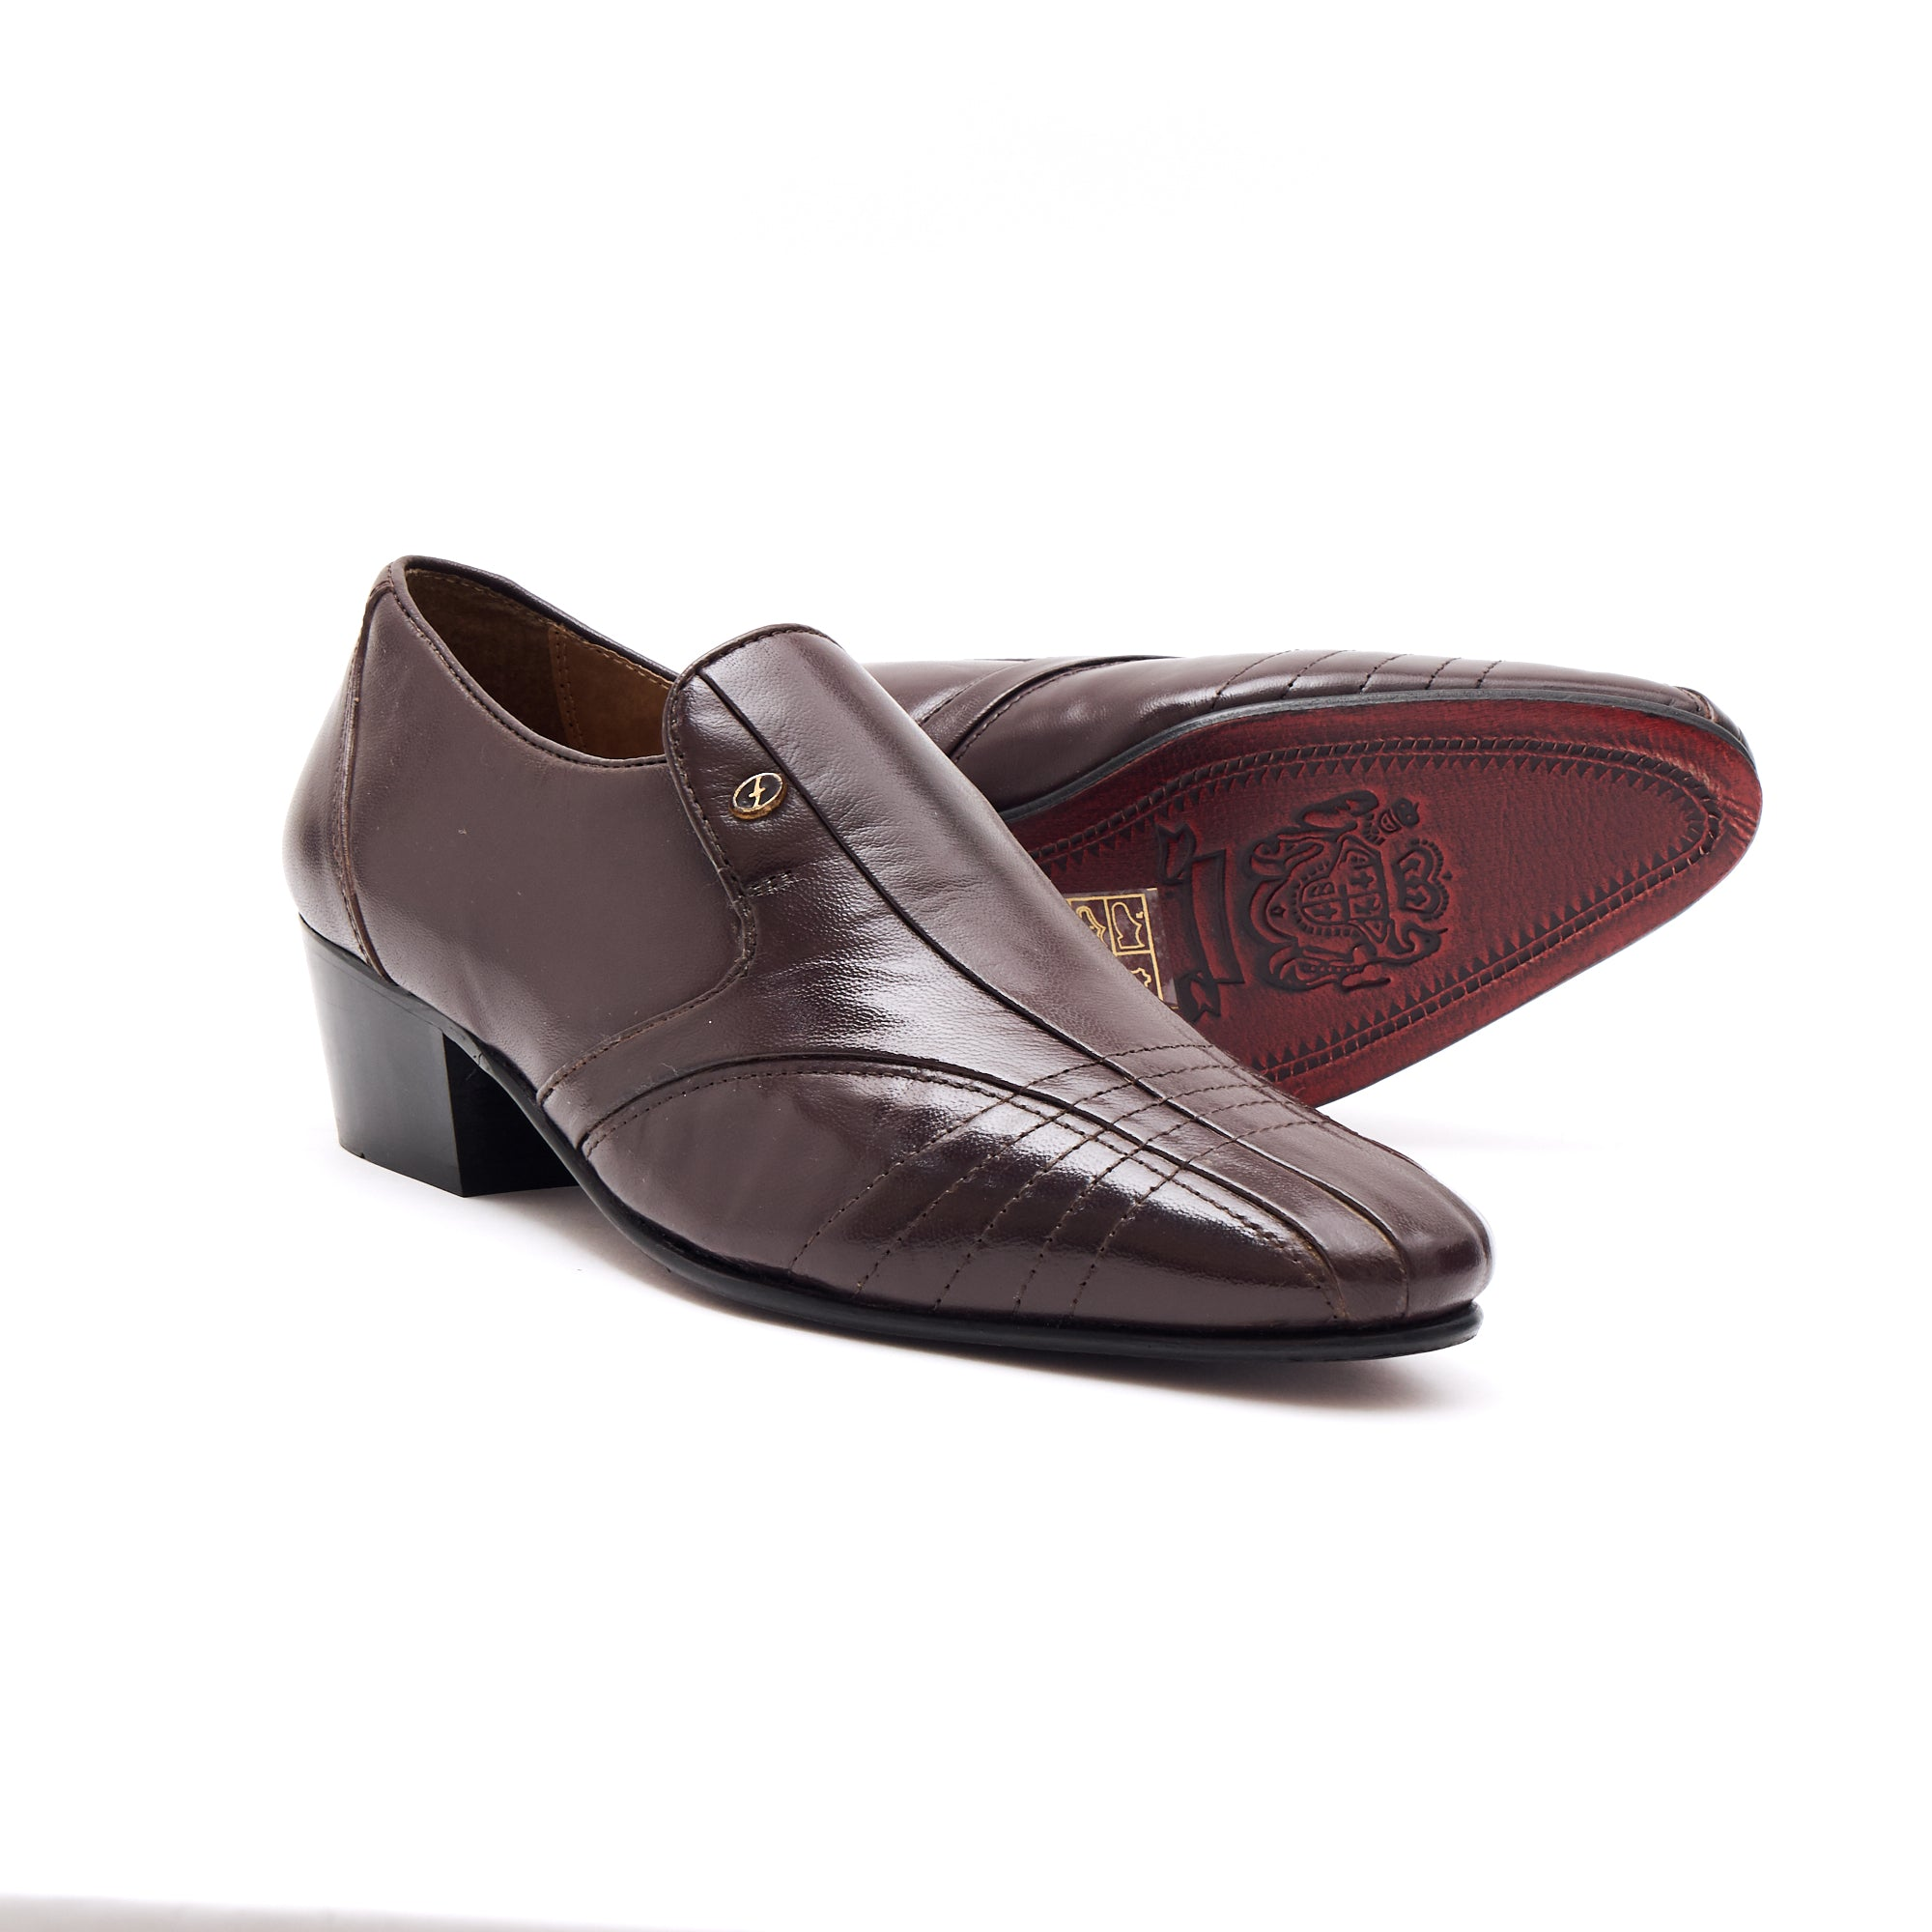 Mens Cuban Heel Leather Shoes- 33477 Brown